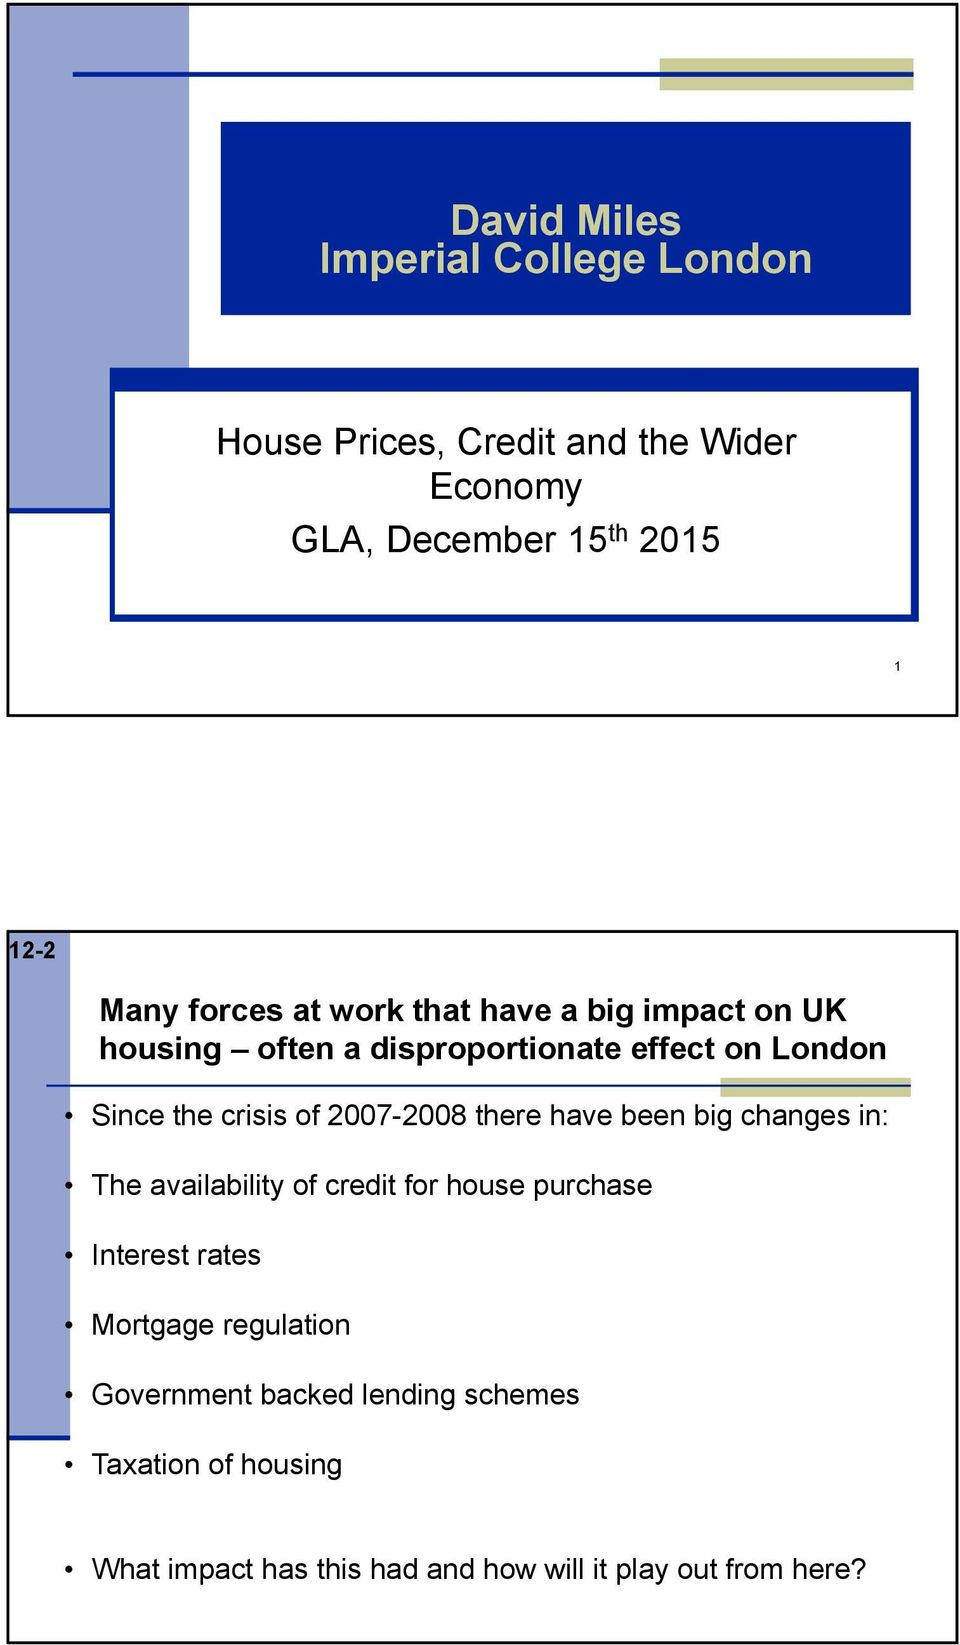 2007-2008 there have been big changes in: The availability of credit for house purchase Interest rates Mortgage